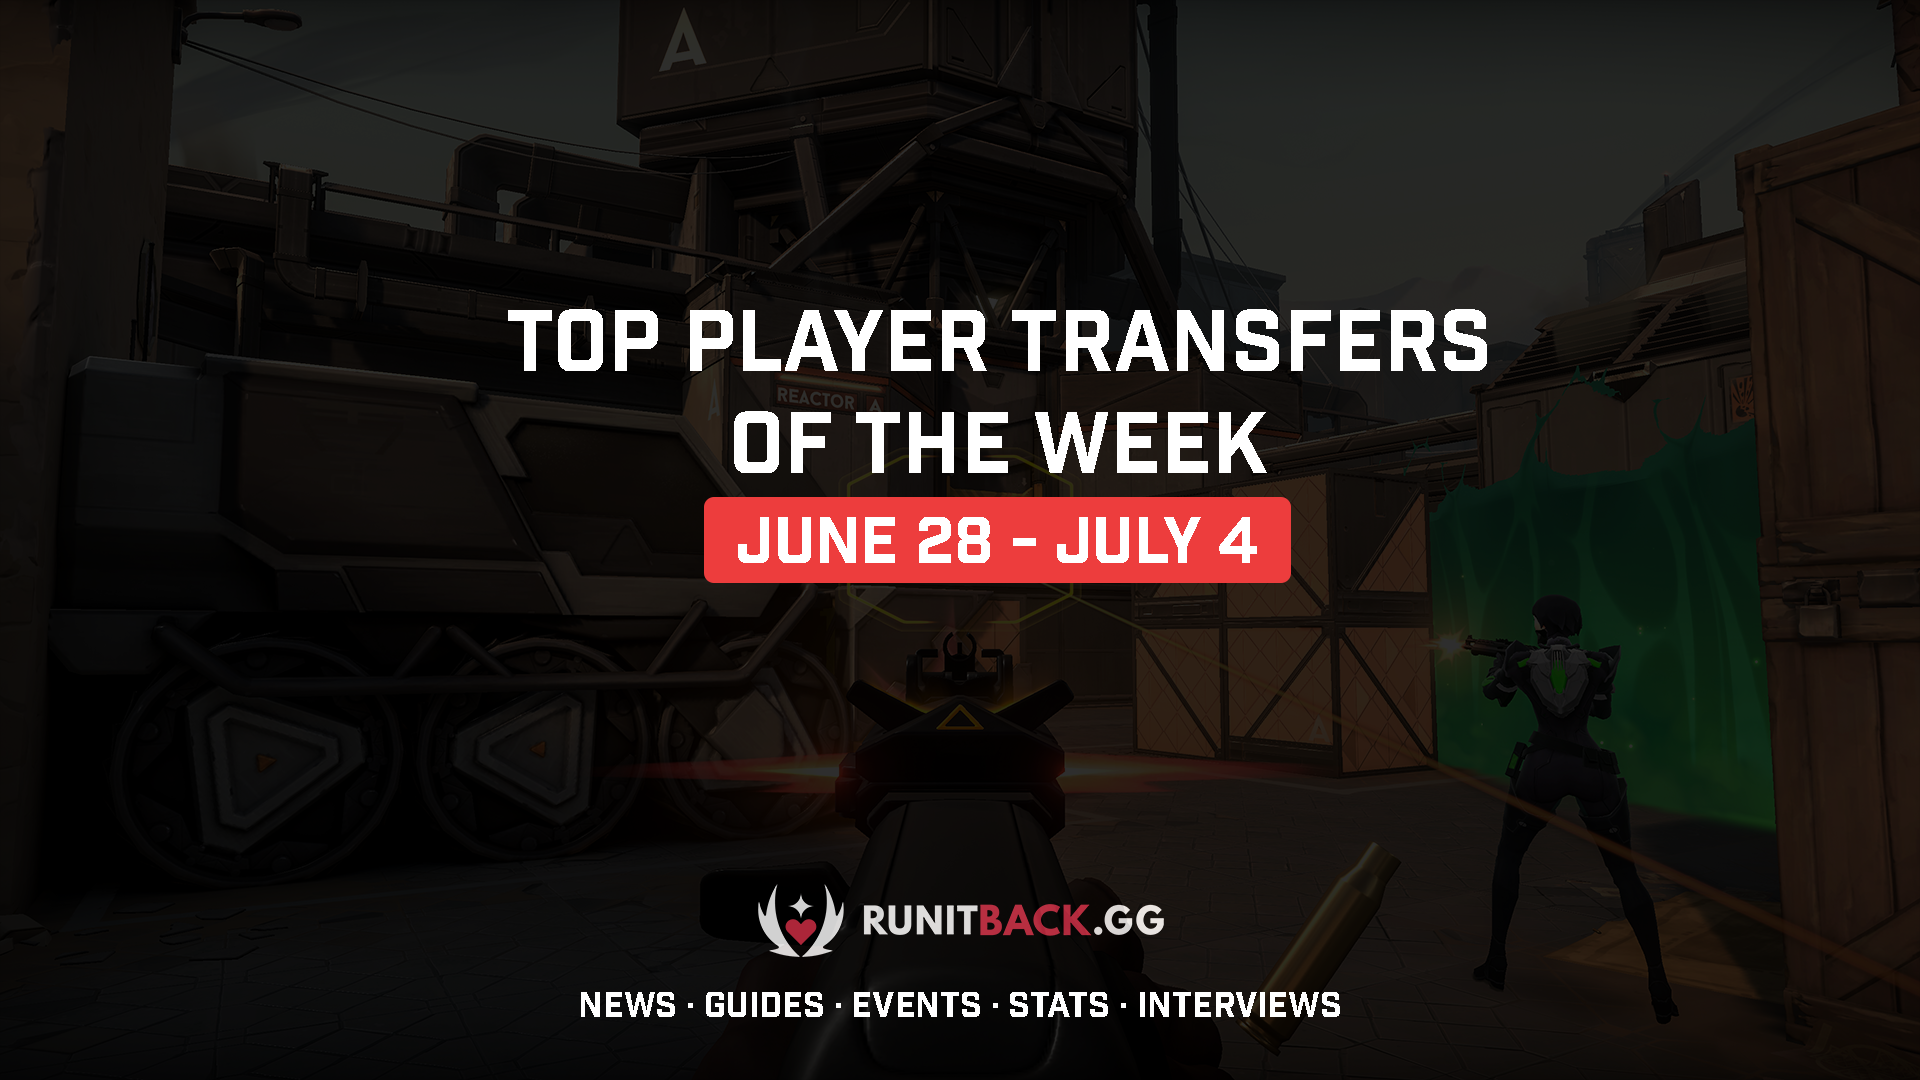 Top Player Transfers of the Week 6/28-7/4